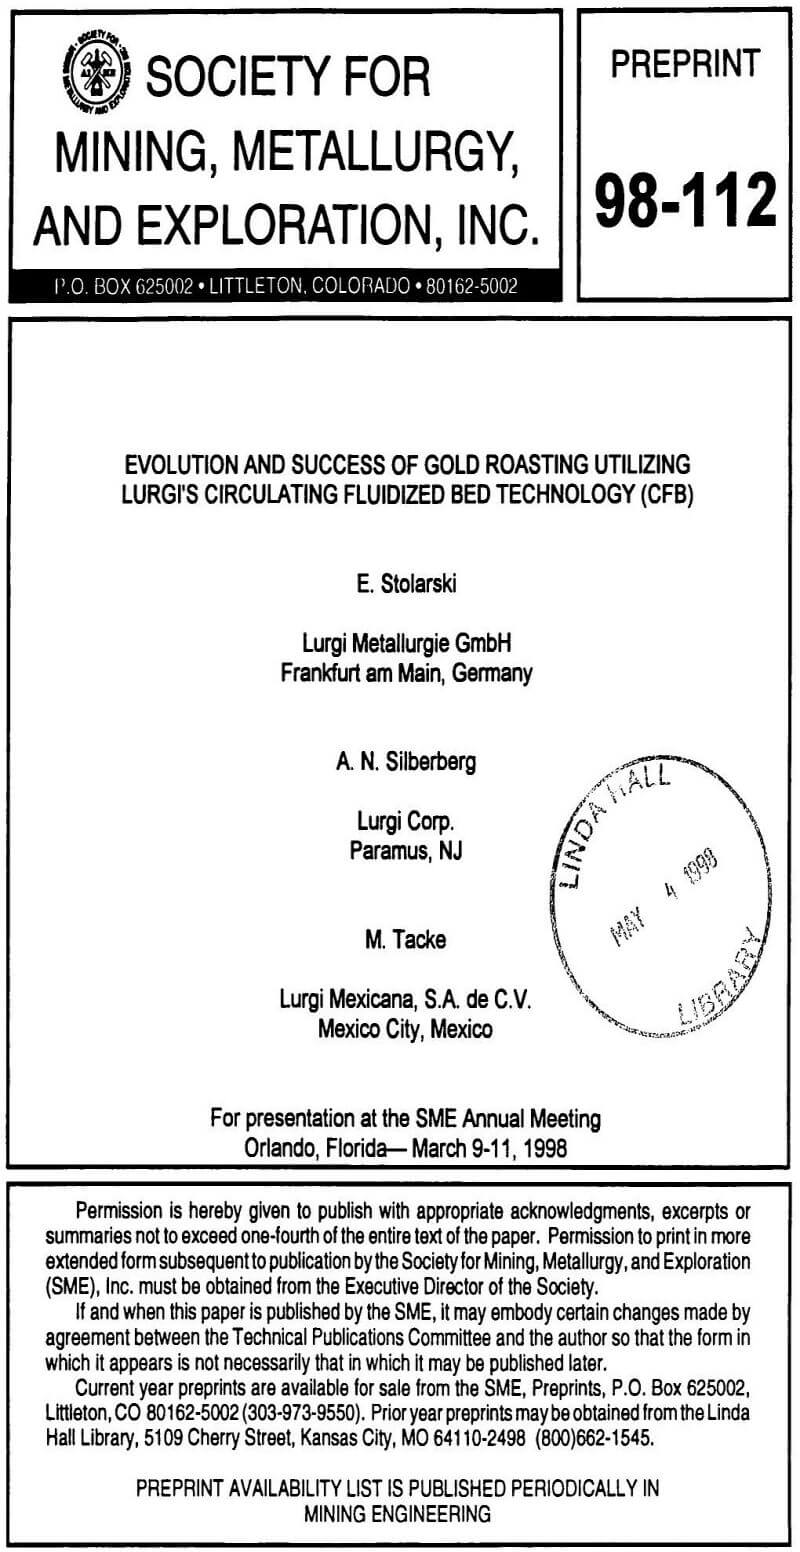 evolution and success of gold roasting utilizing lurgi's circulating fluidized bed technology (cfb)